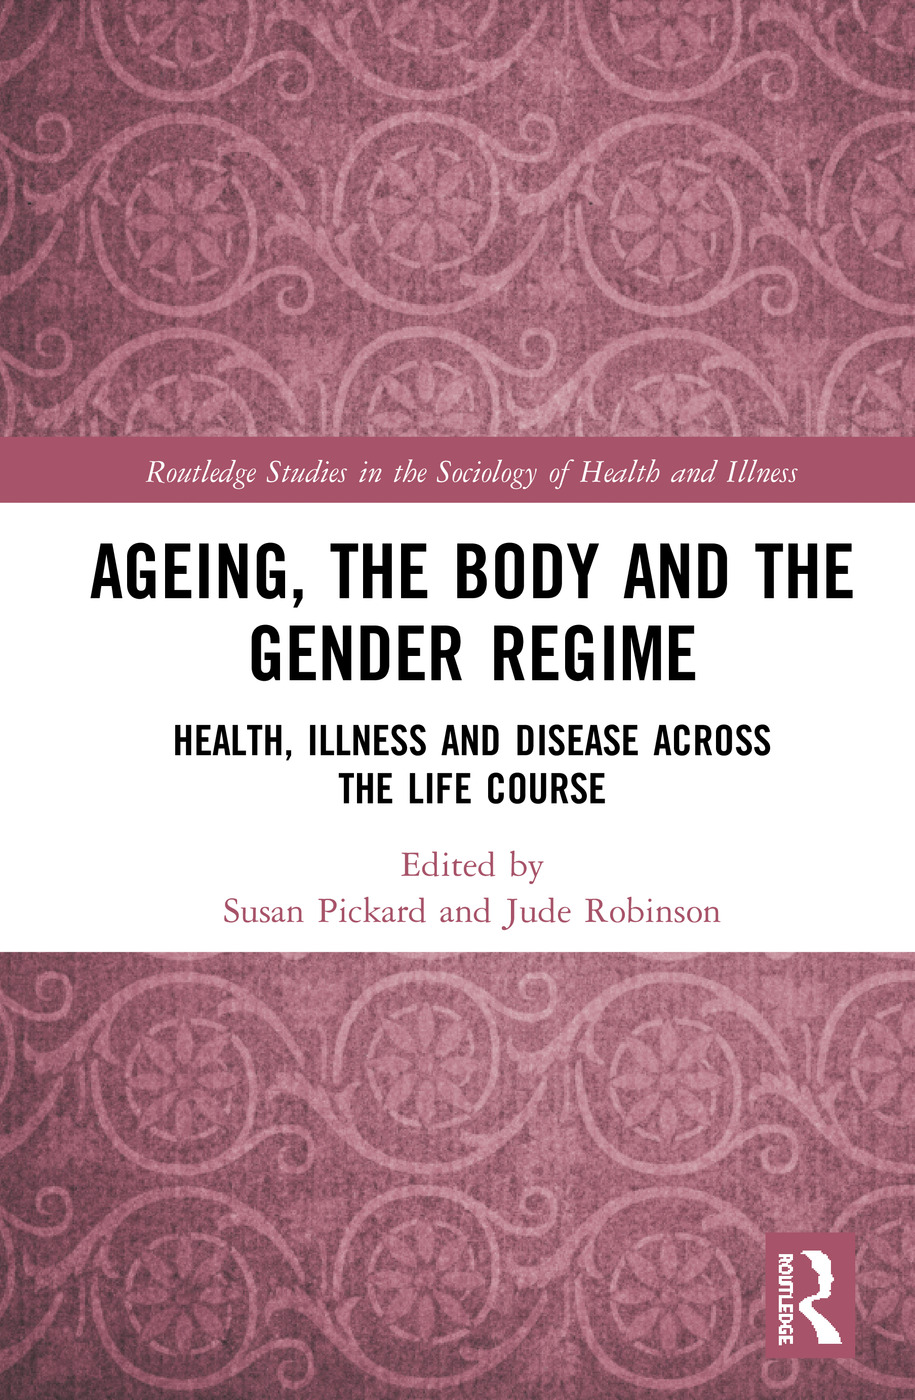 Ageing, the Body and the Gender Regime: Health, Illness and Disease Across the Life Course book cover